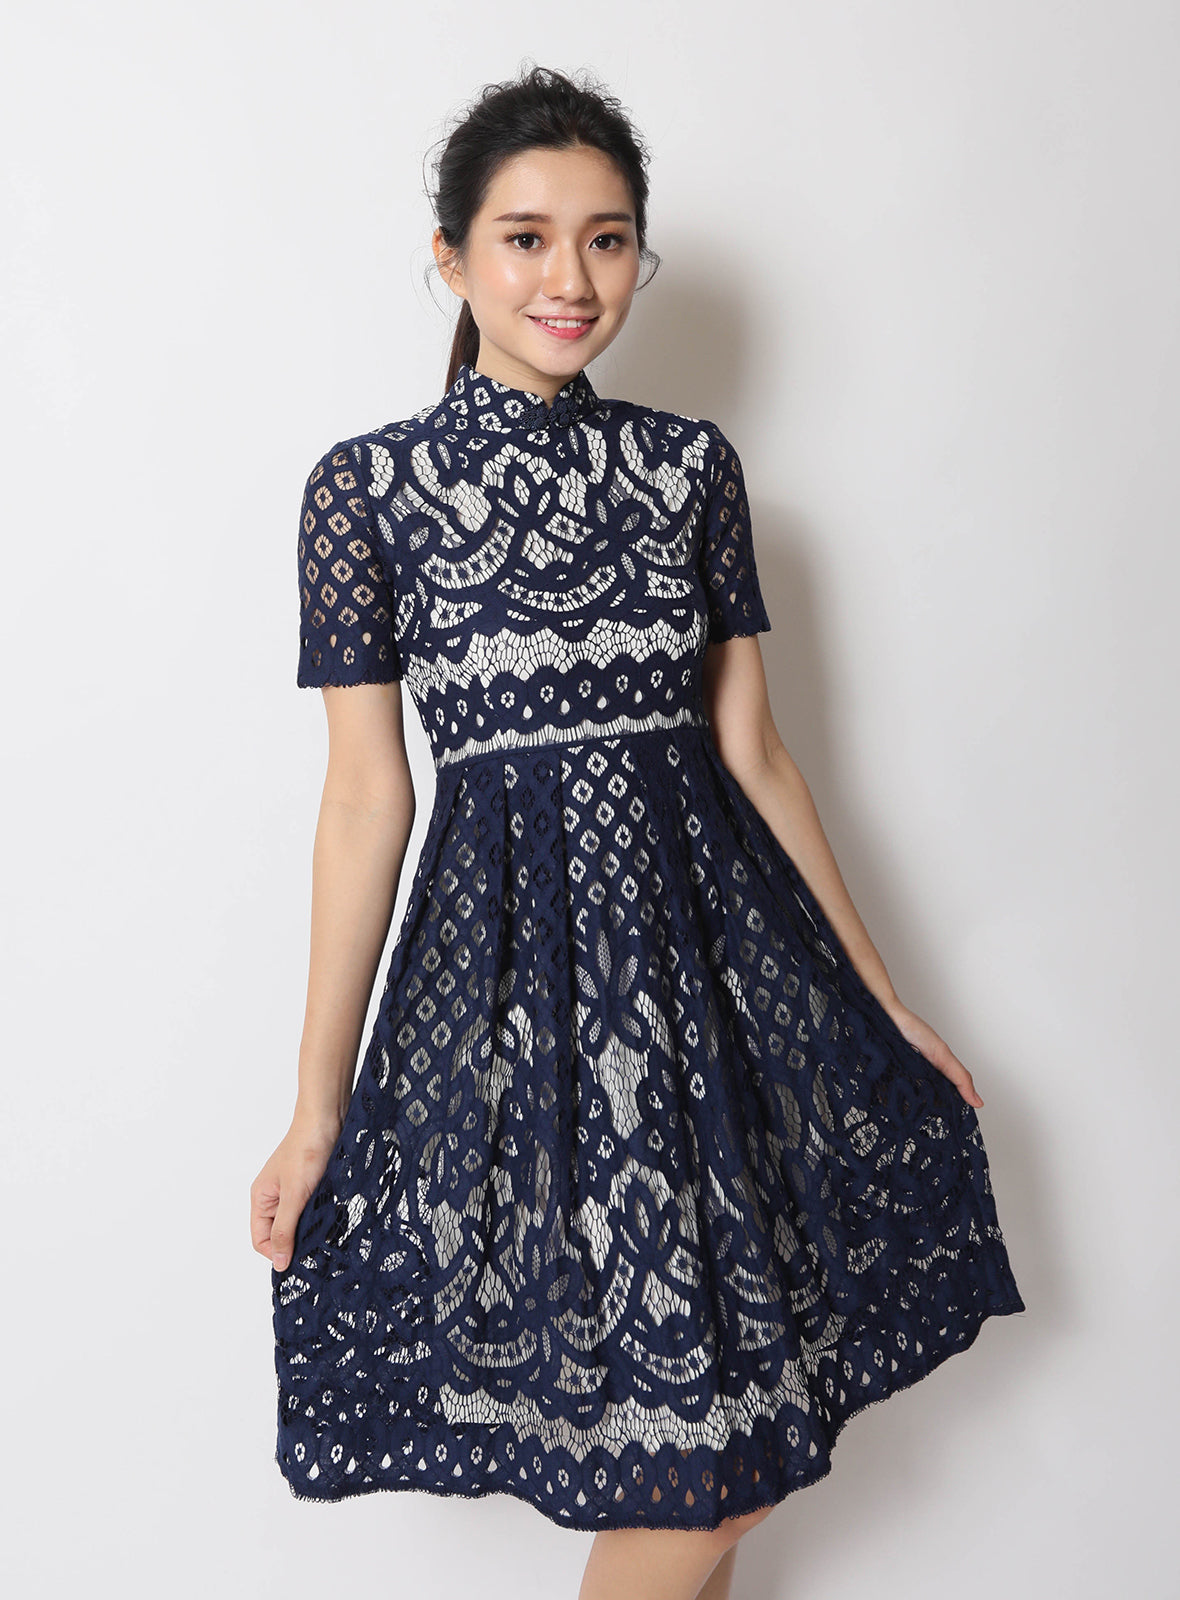 Lu Qi Pao in Navy